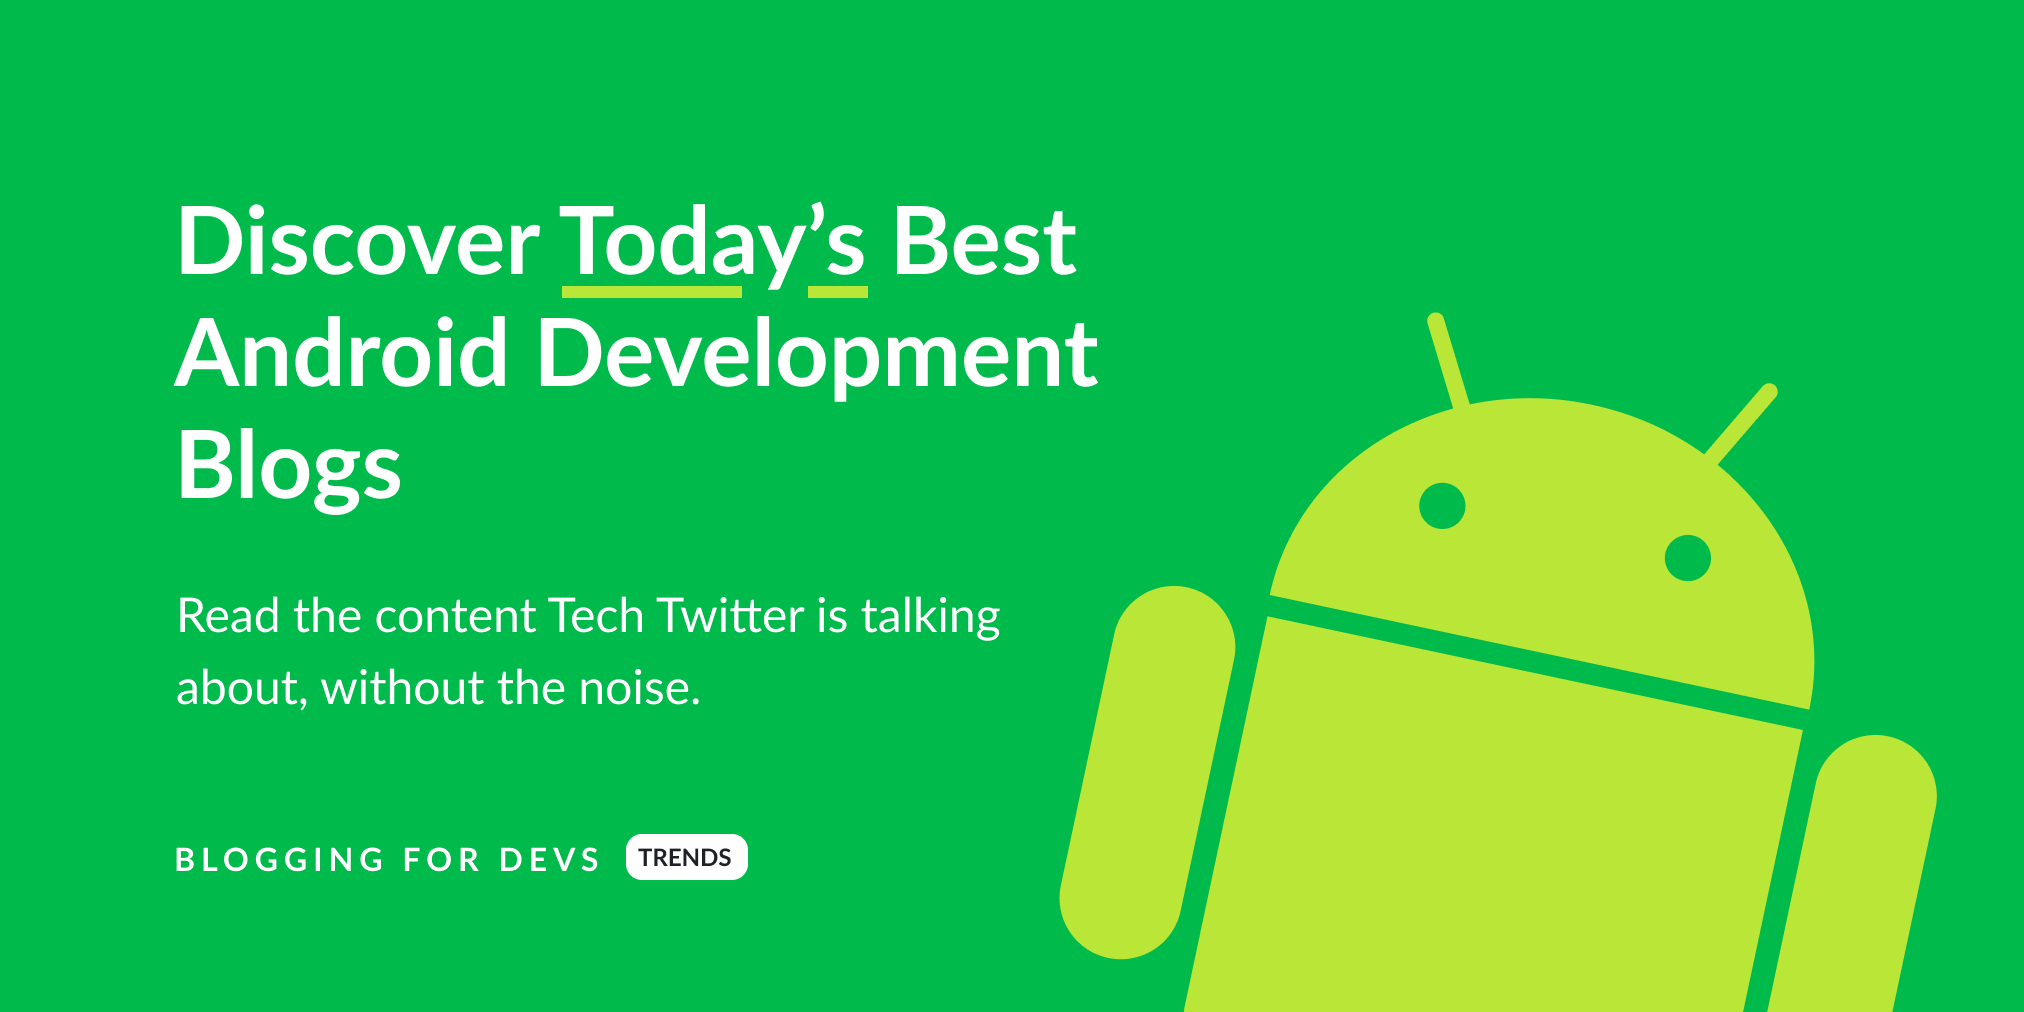 Best Android Development Blogs